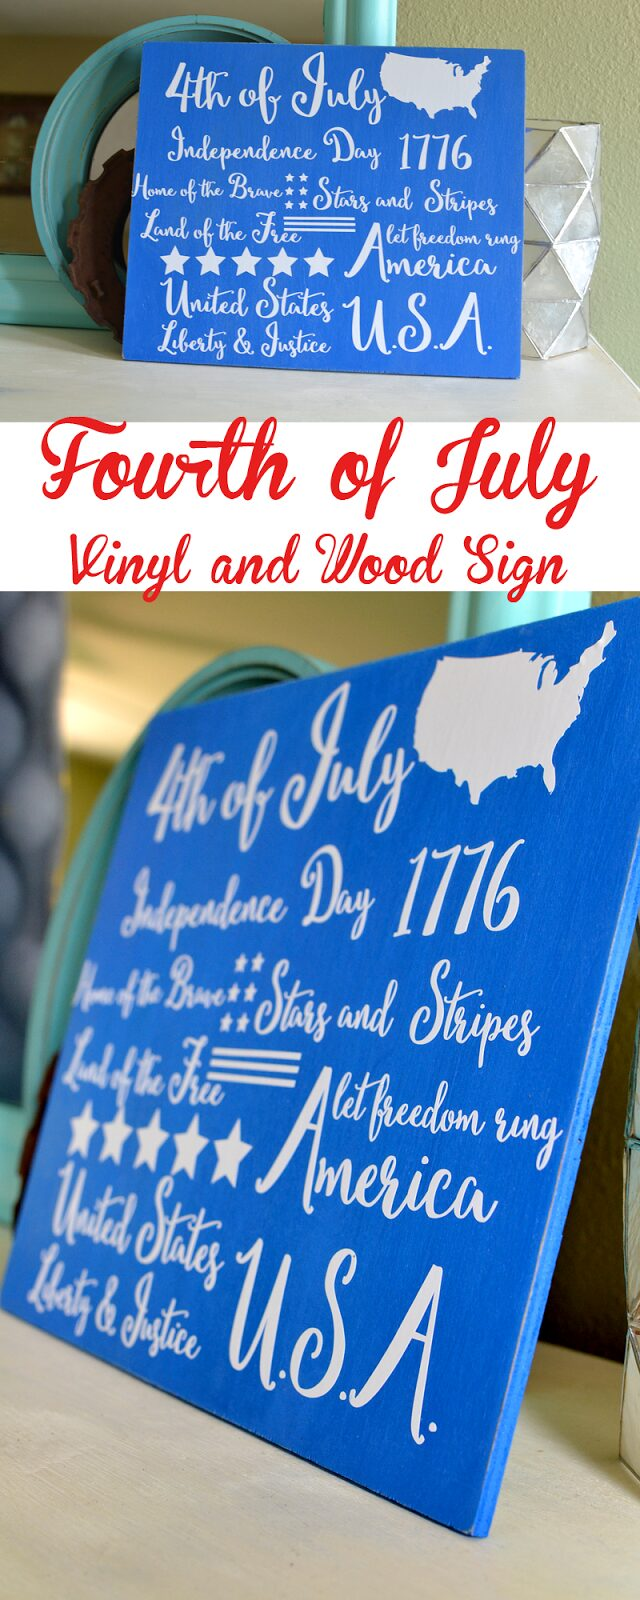 DIY Fourth of July Sign – Wood and Vinyl